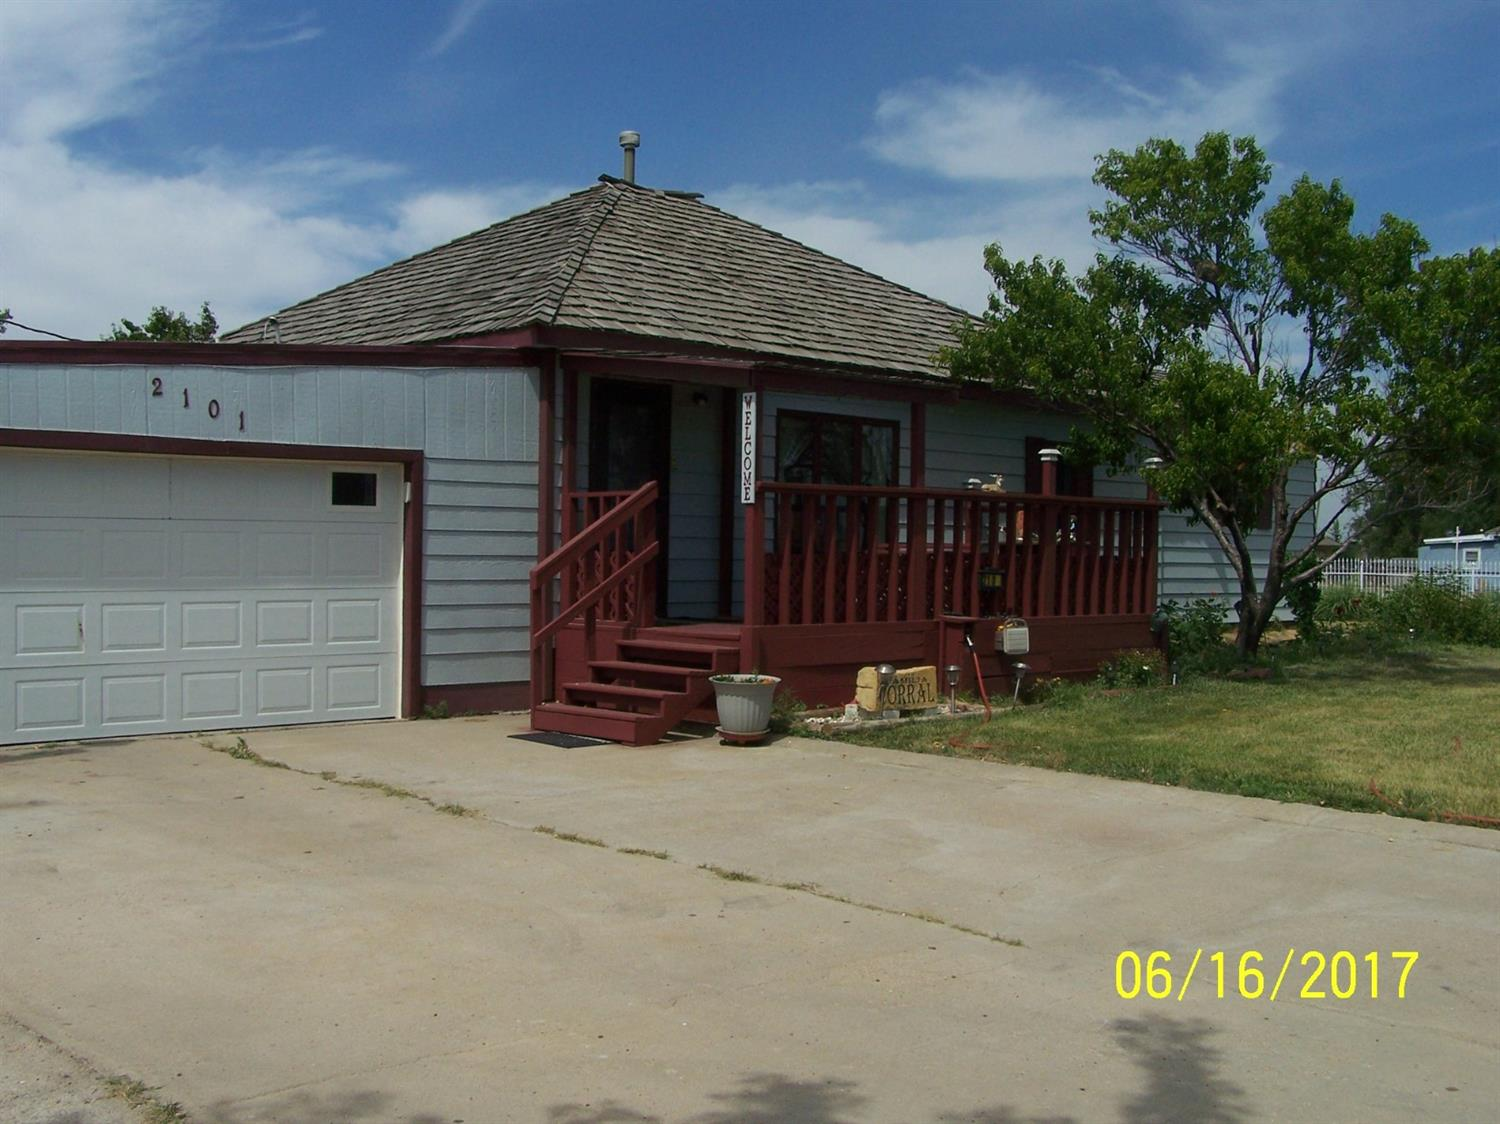 2101 W Maple, Garden City, KS 67846